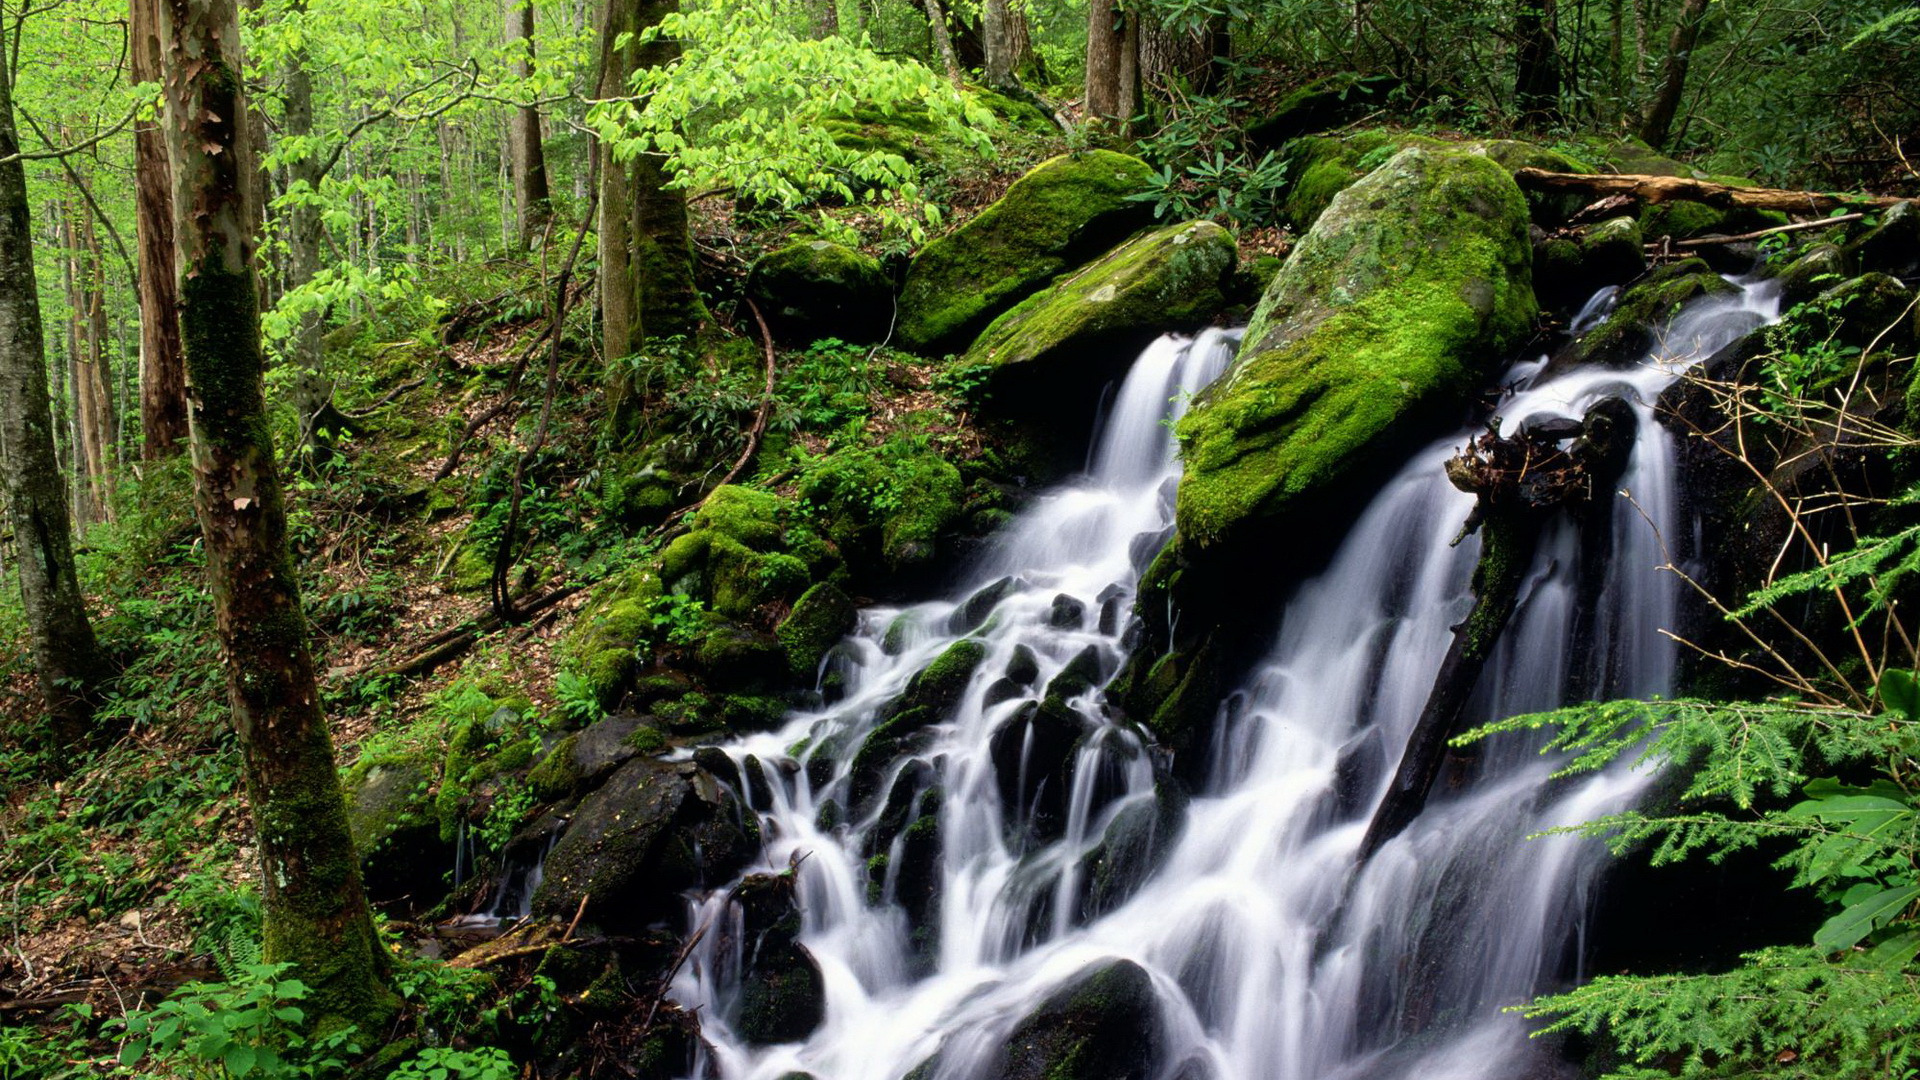 click to free download the wallpaper--Free Download Natural Scenery Picture - A Waterfall in Rapid Flow, Green Plants Alongside, Combine Quite a Scene 1920X1080 free wallpaper download